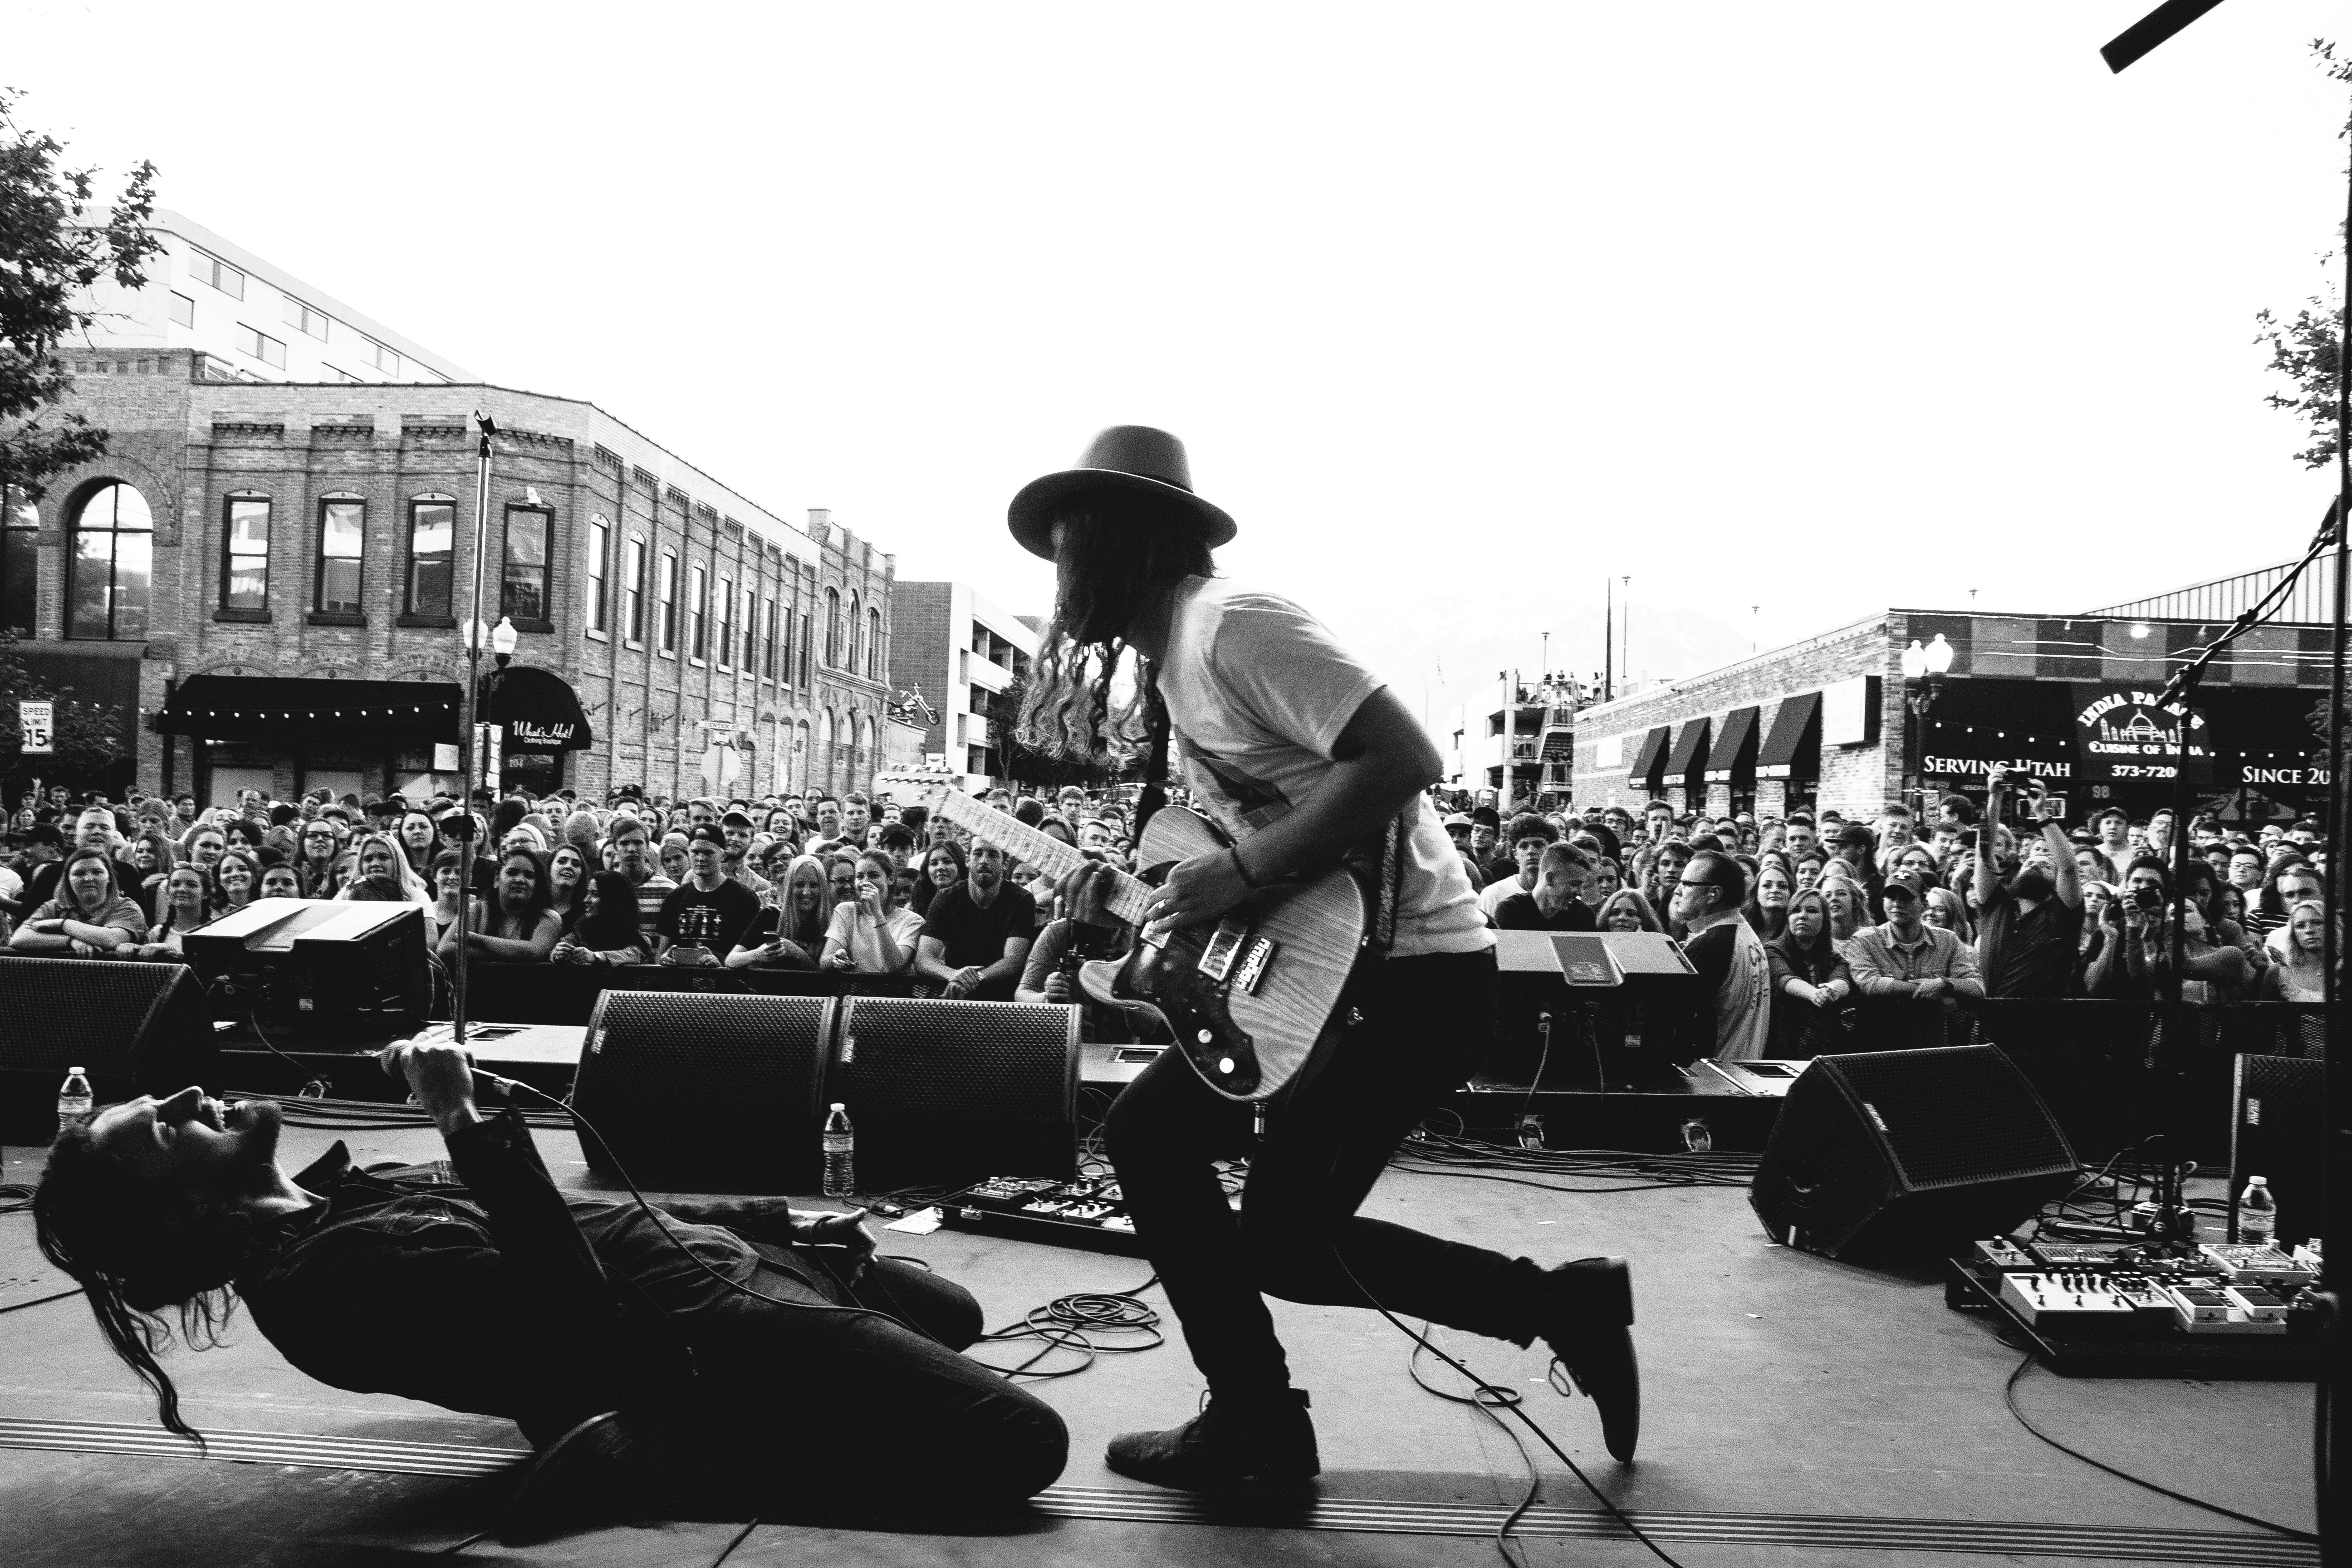 grayscale photography of concert during daytime